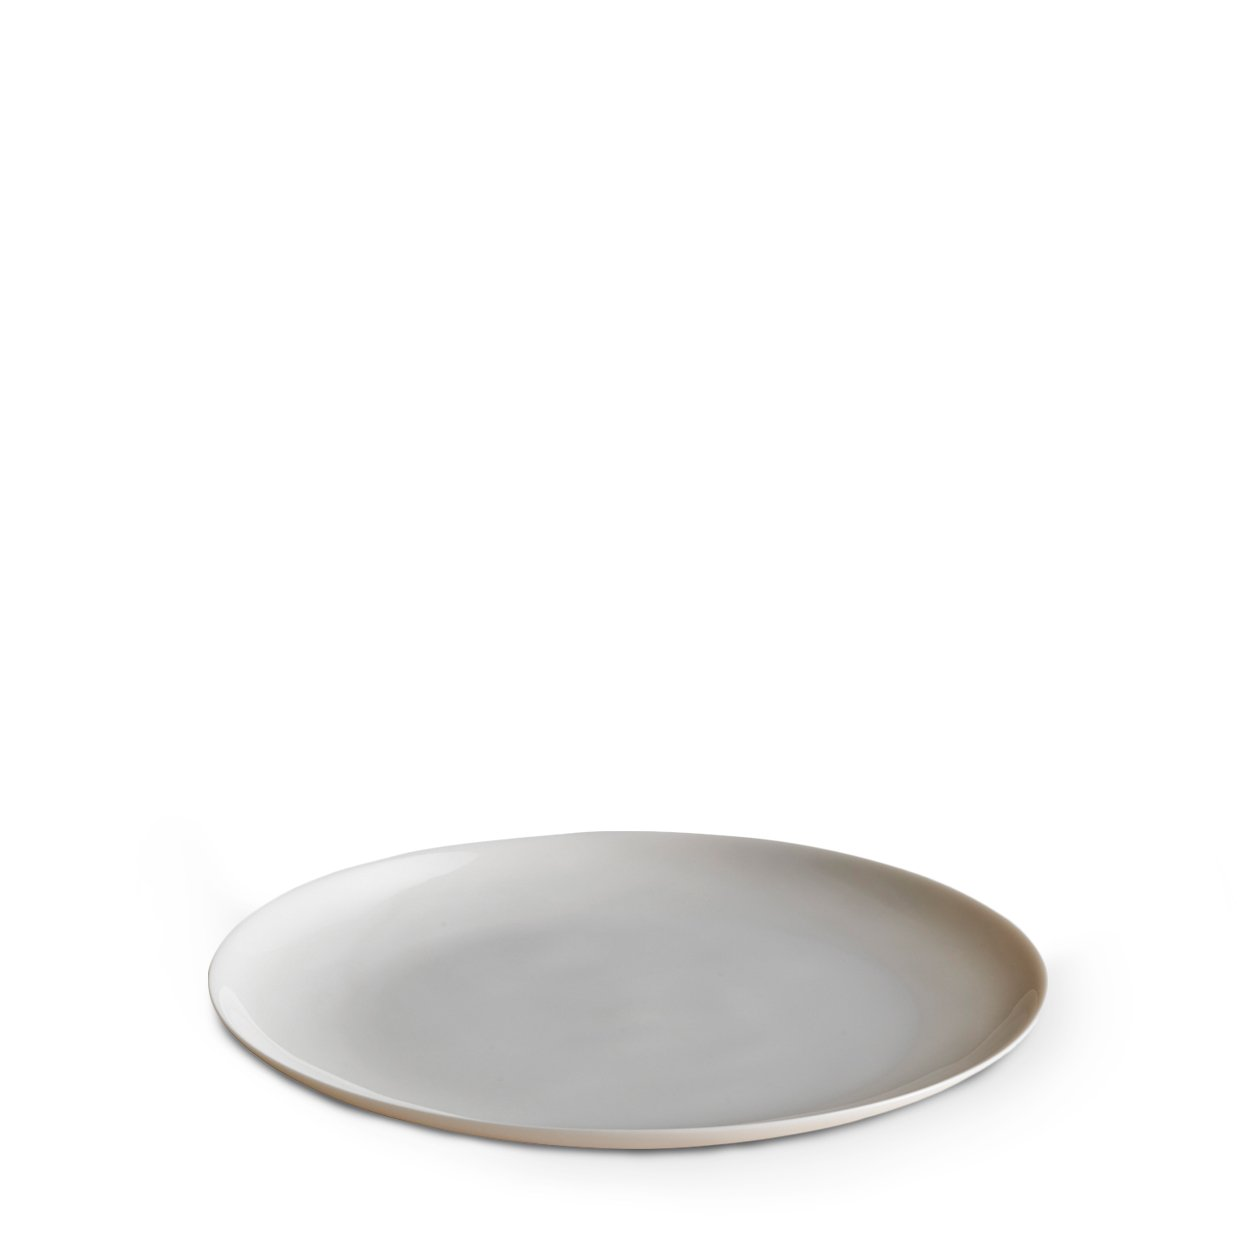 Dune Porcelain Medium Plate White